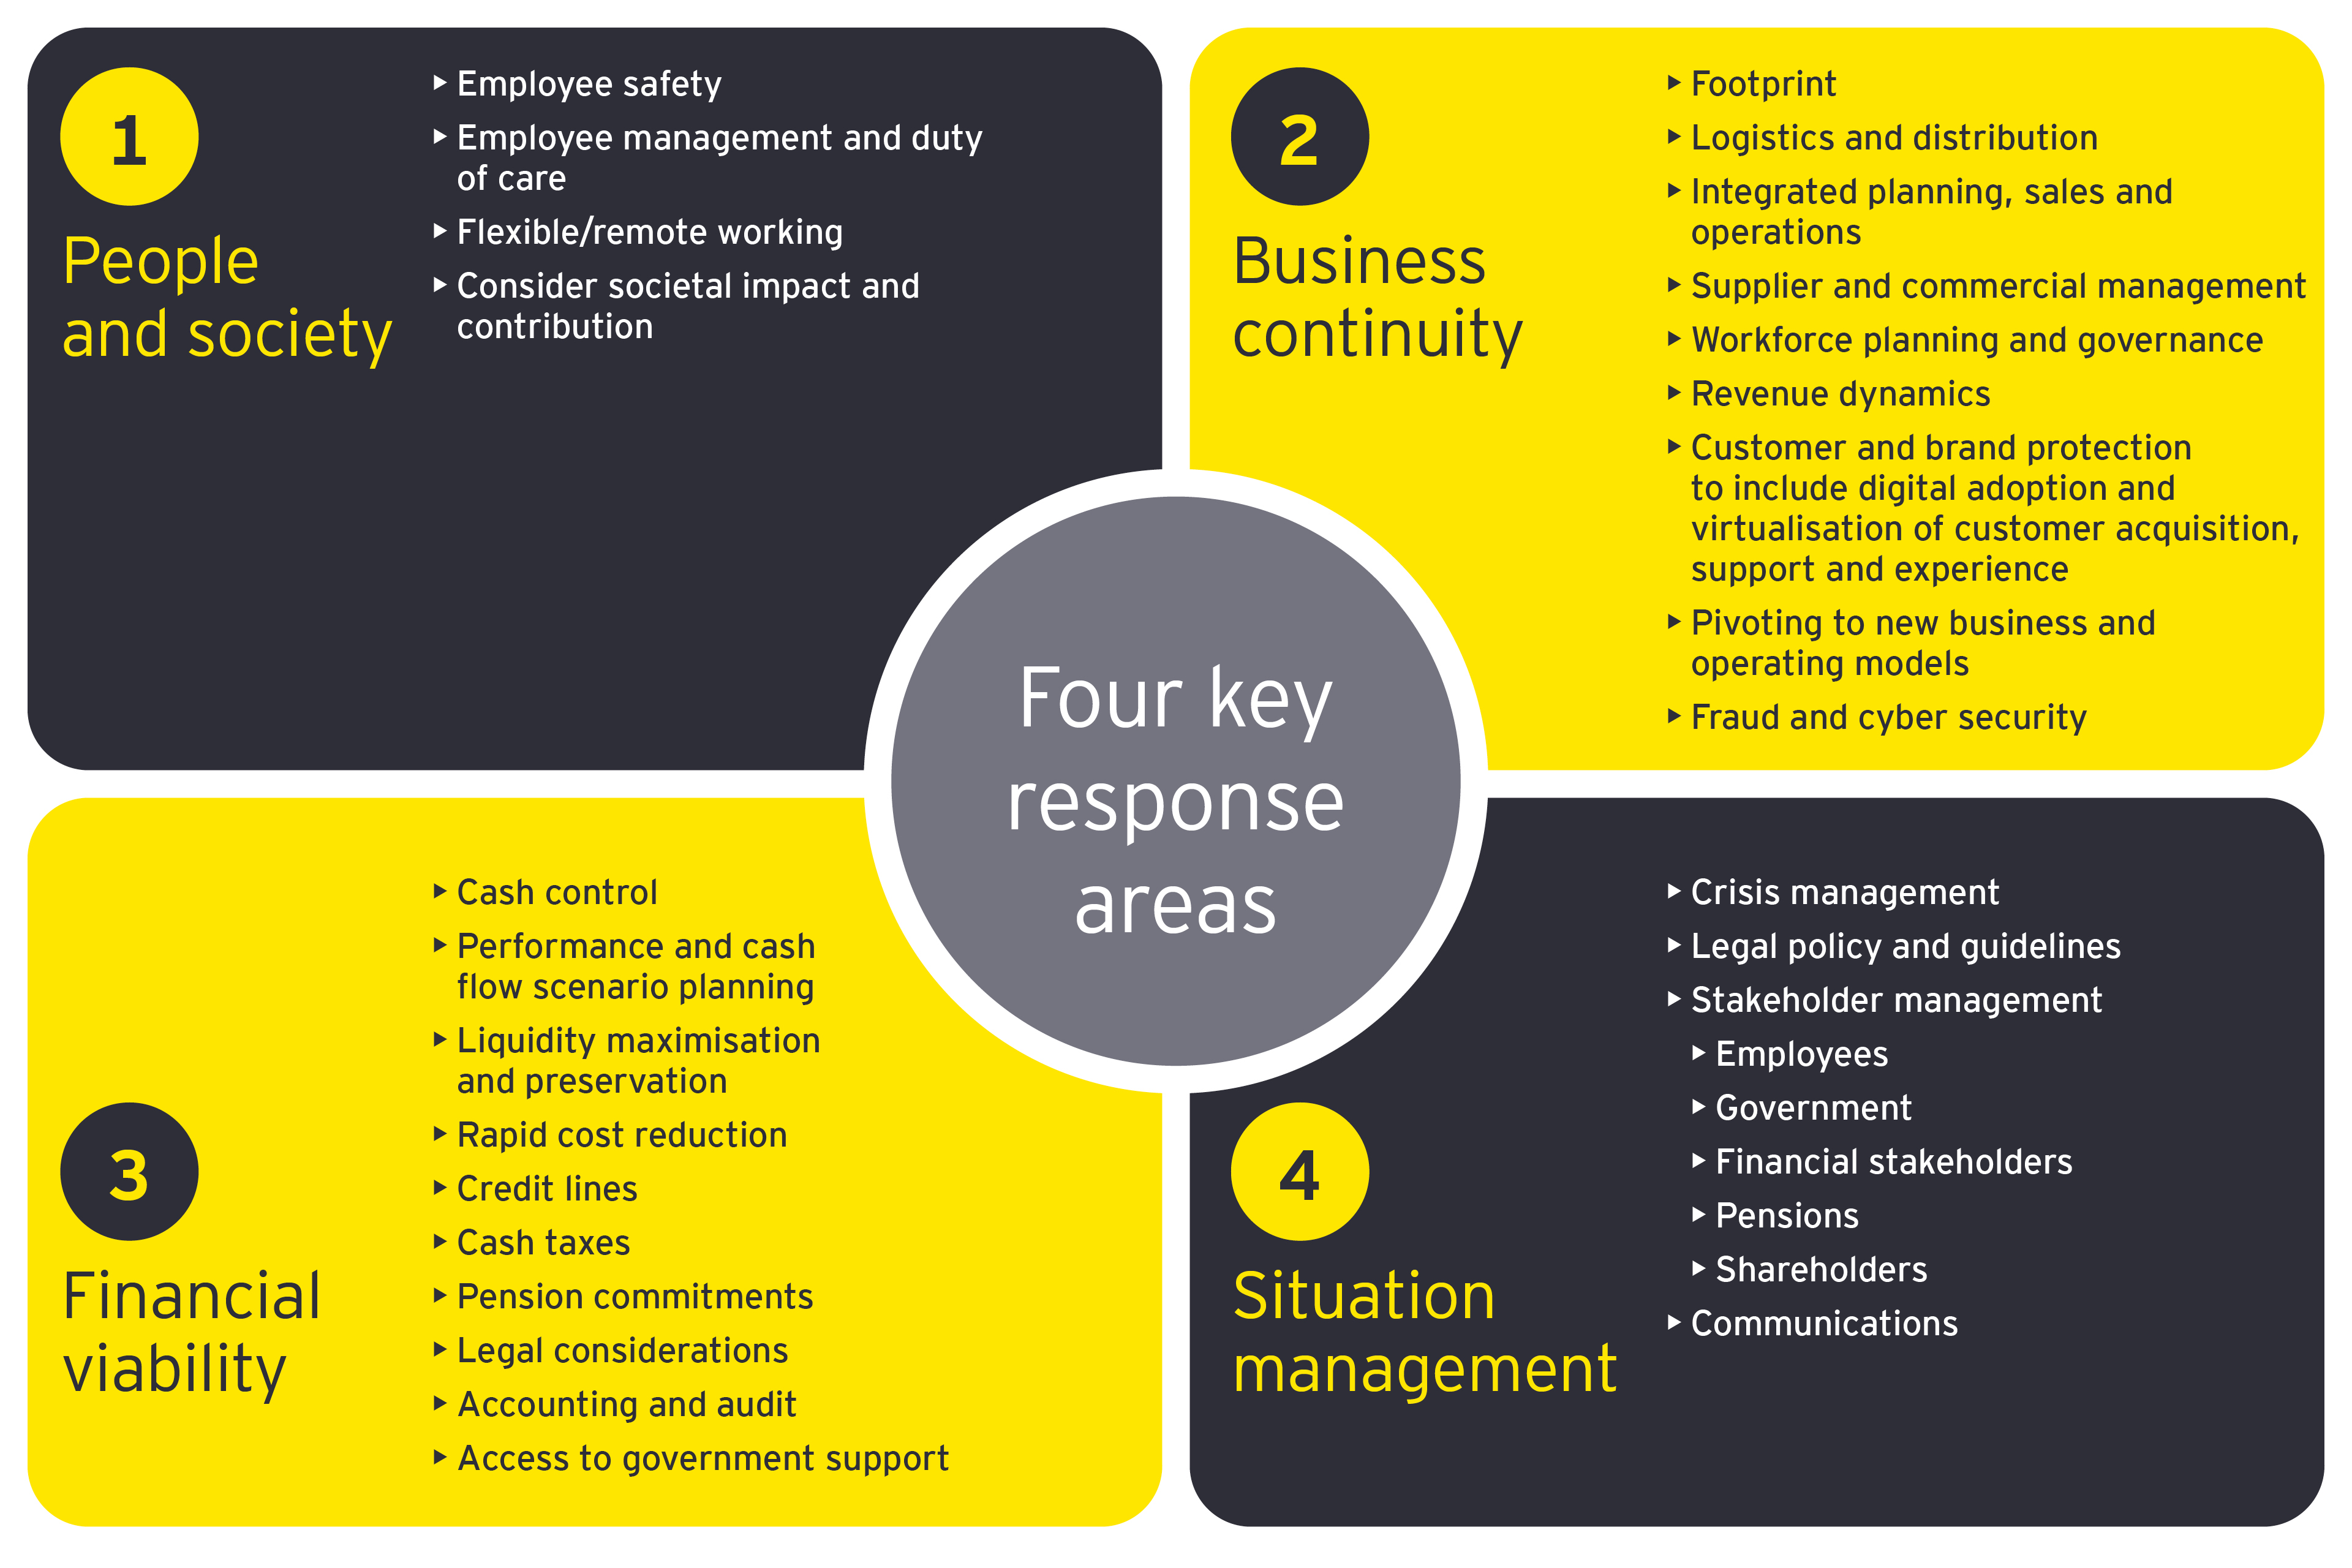 EY - COVID-19: A framework for business response